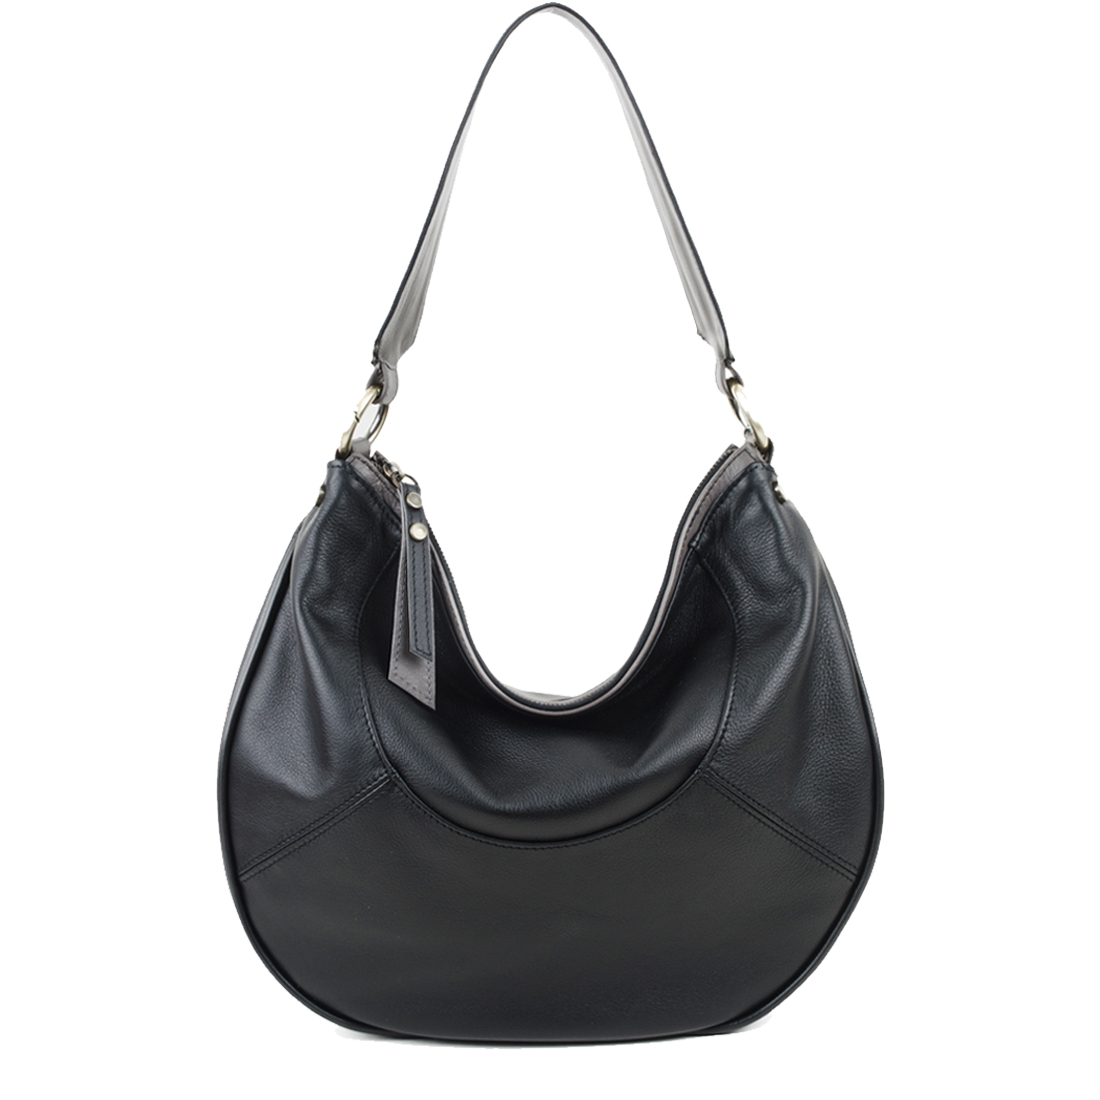 Hannah Black Leather Shoulder Bag